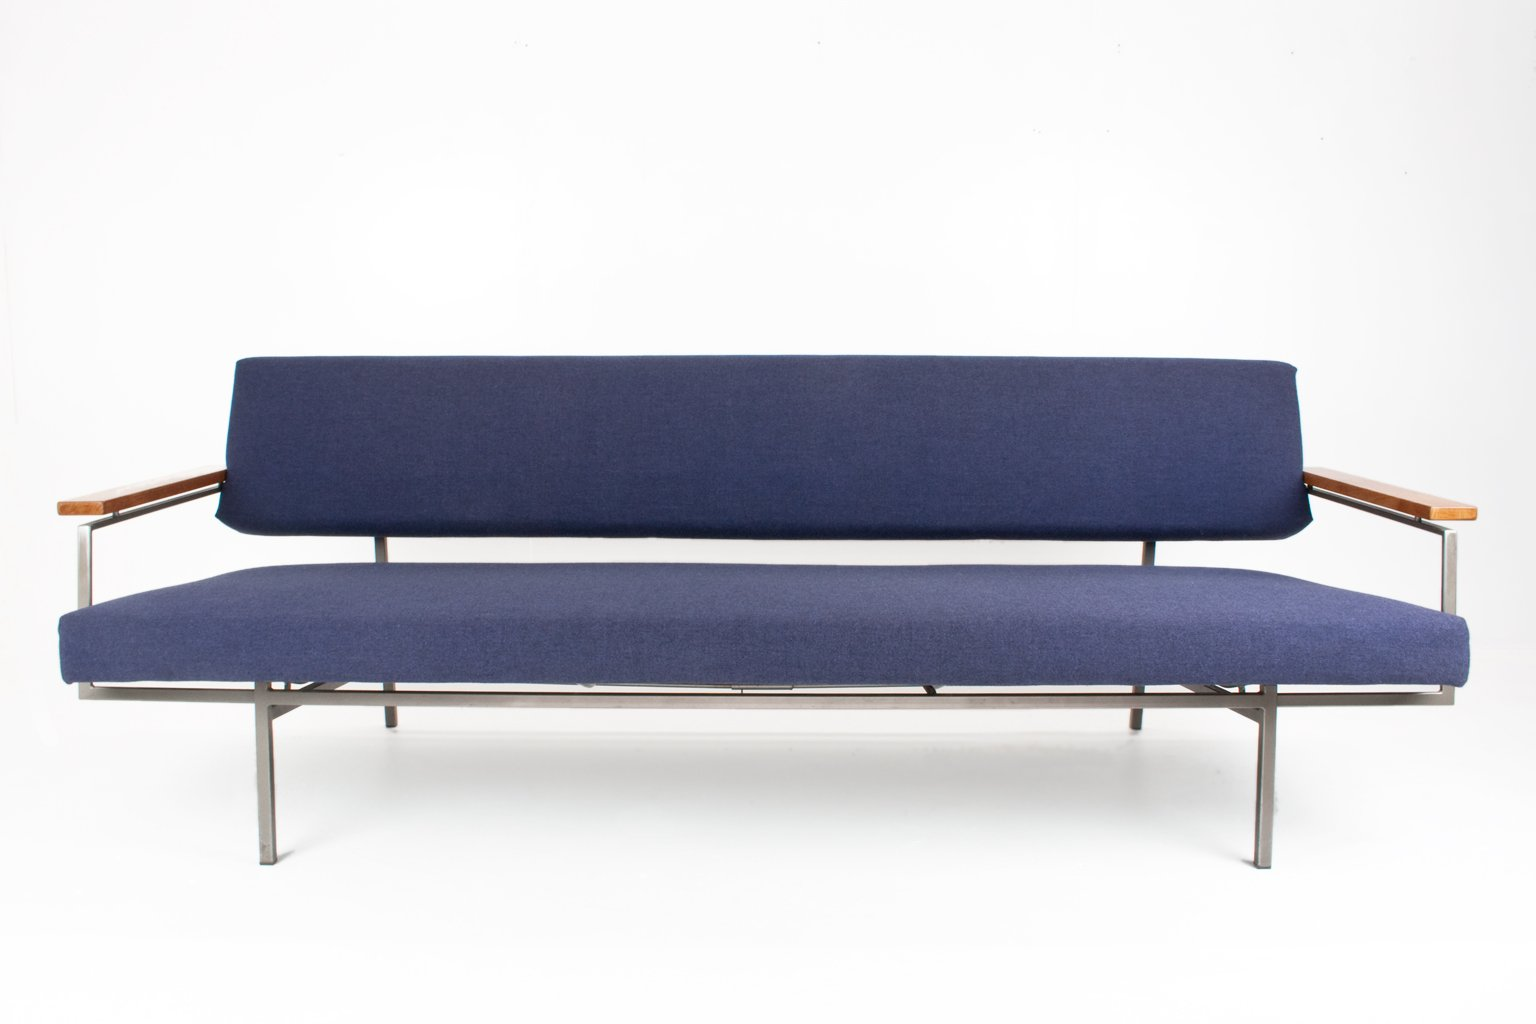 Sofa With Chromed Metal Frame By Rob Parry For Gelderland